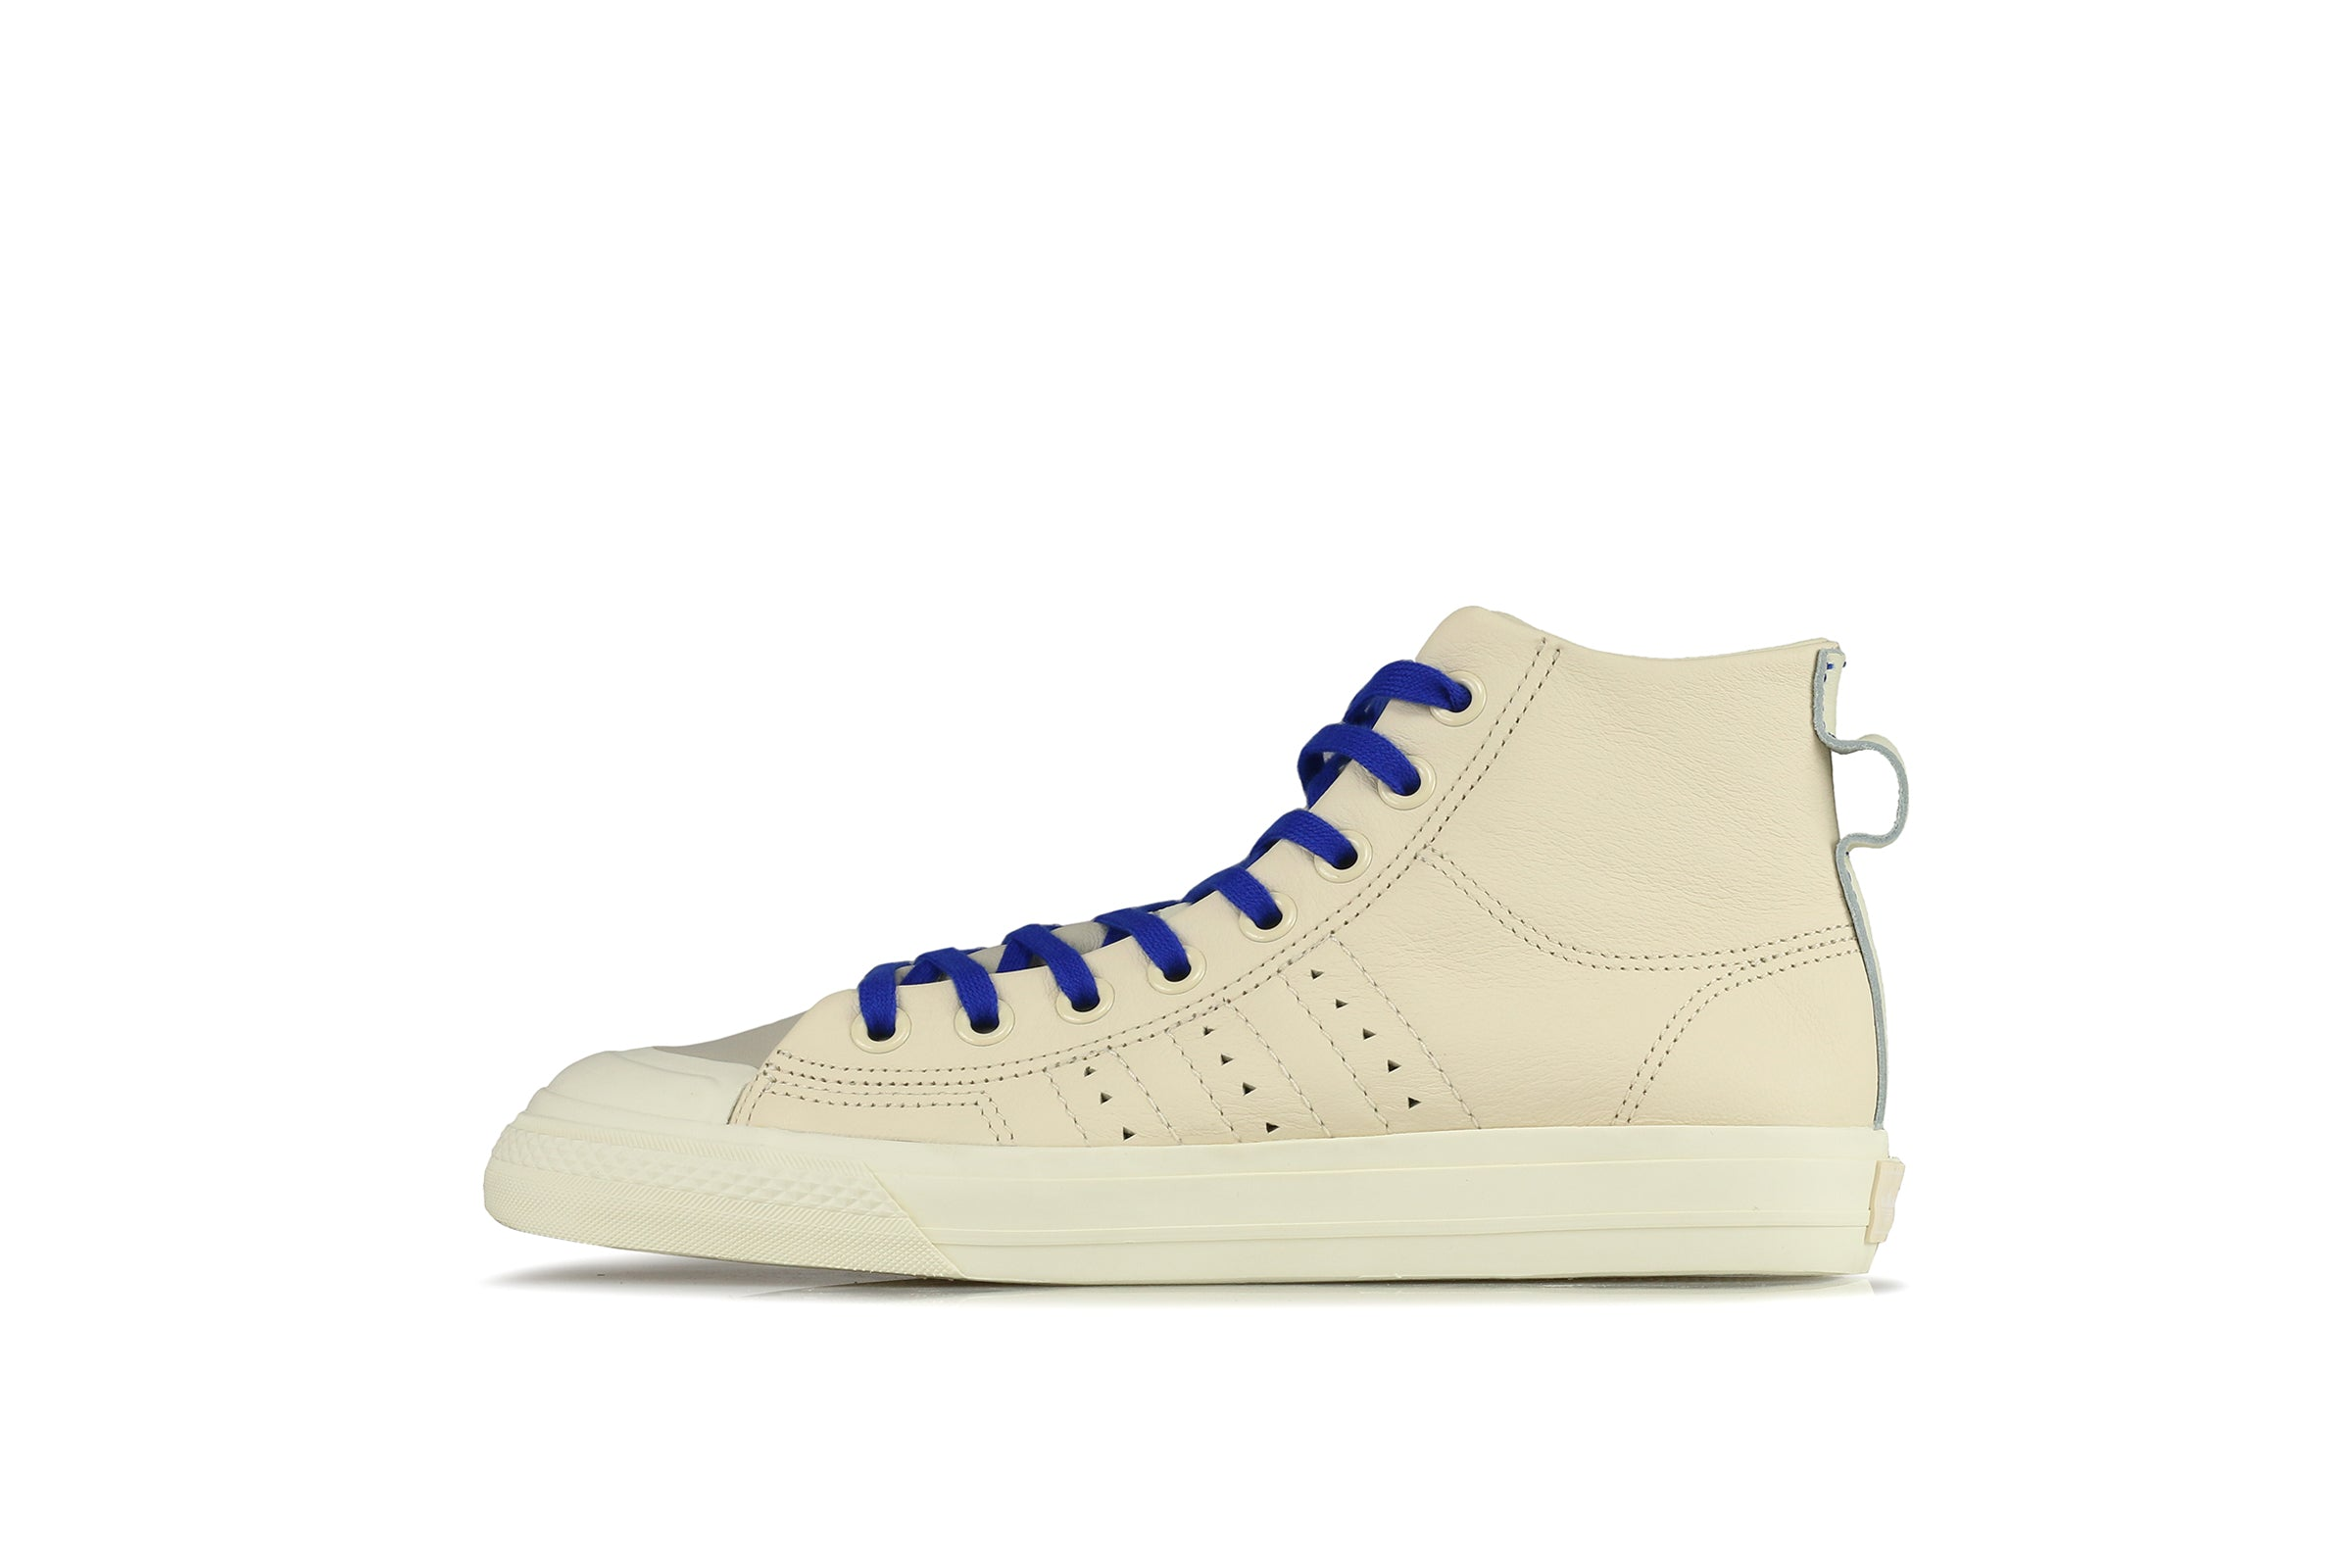 Adidas Nizza Hi RF x Pharrell Williams